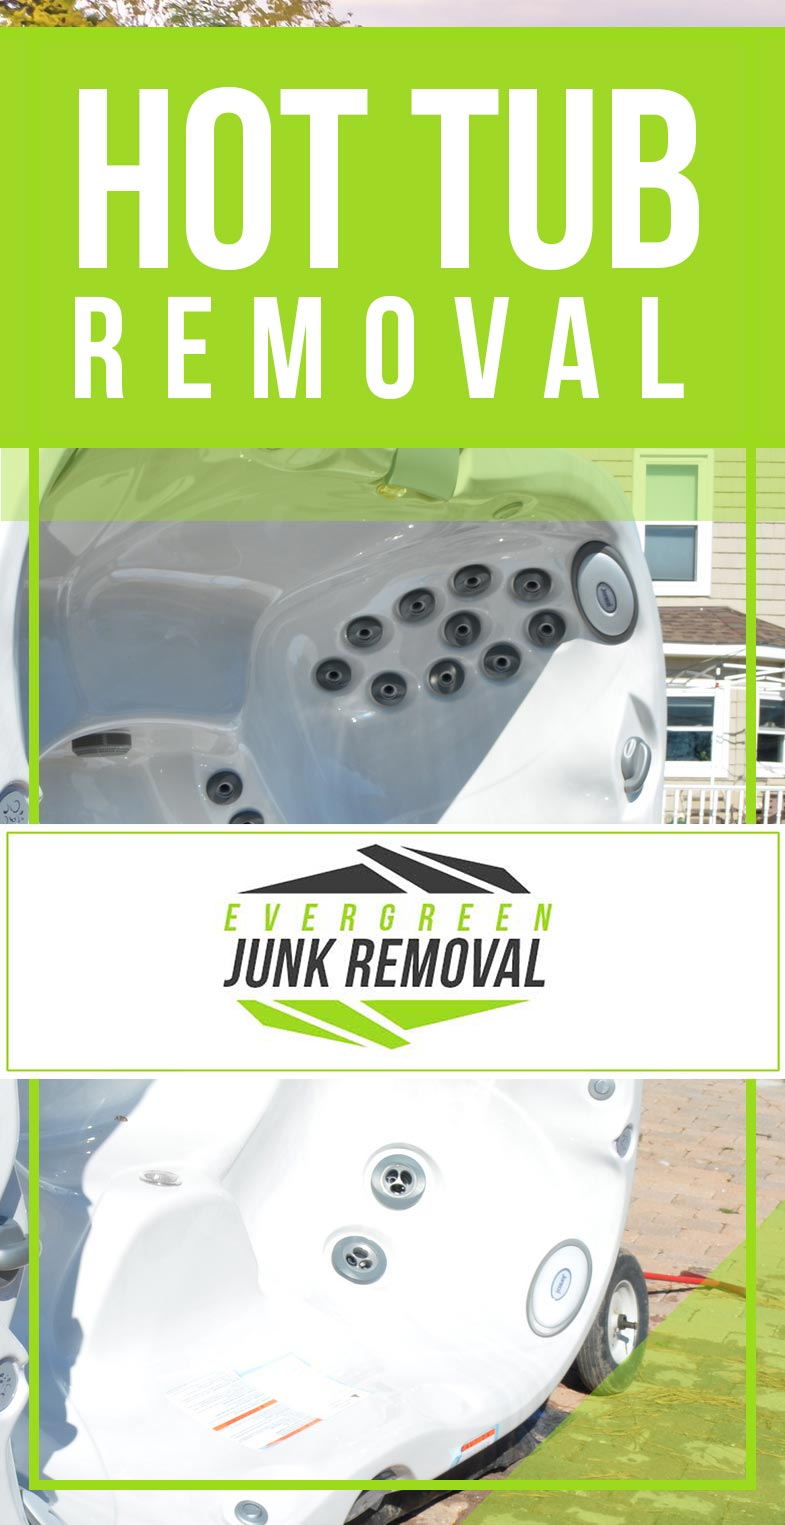 Cloverleaf Hot Tub Removal